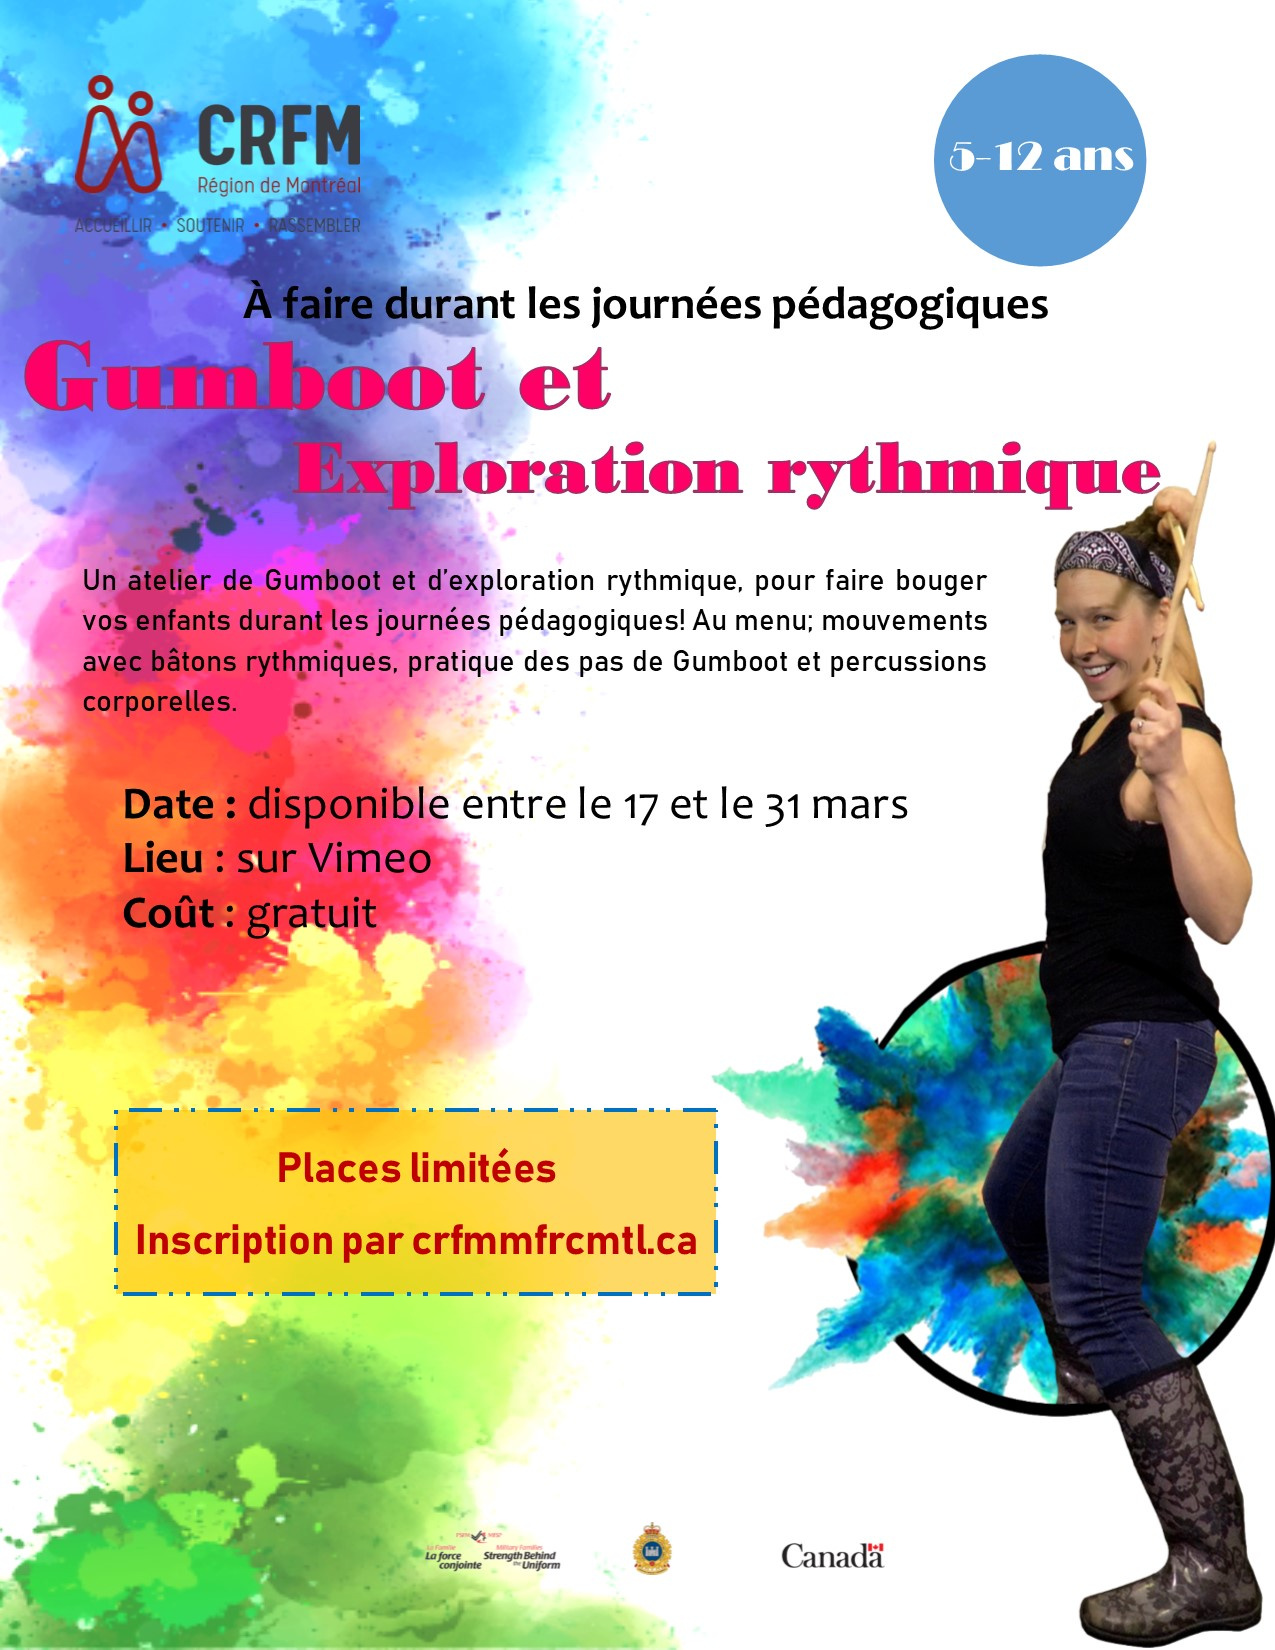 Gumboot and rhythmic exploration (FR)